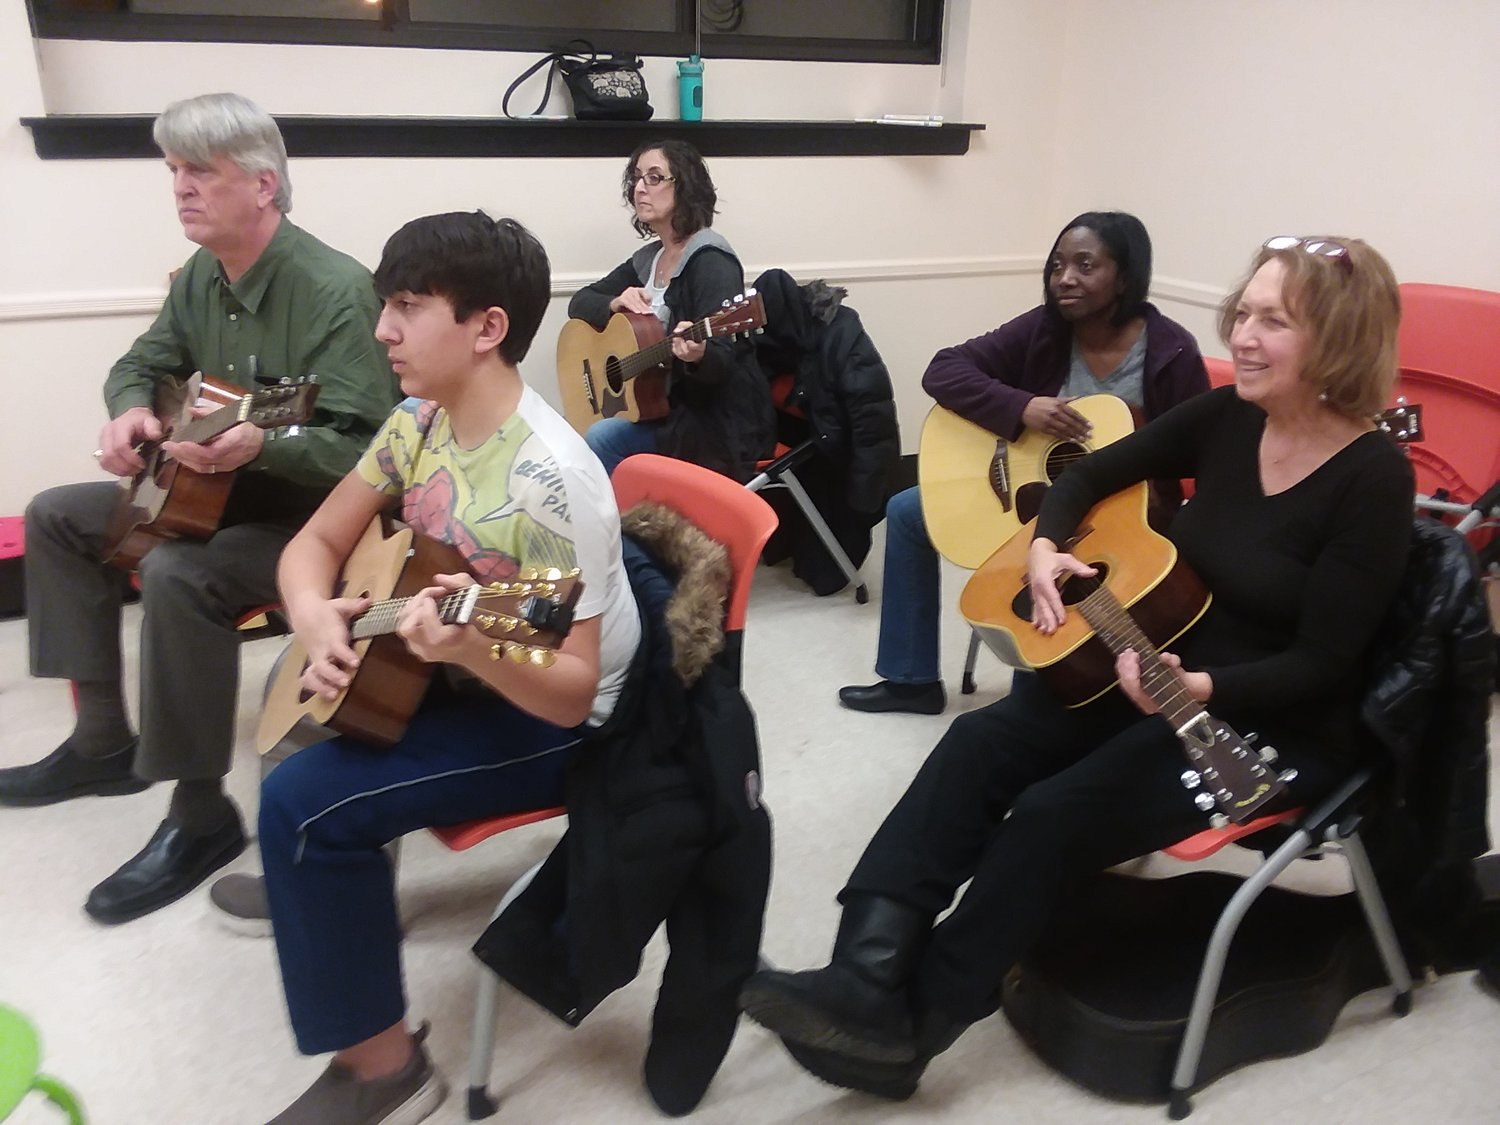 The Guitar Project classes also include lessons for adults that start at 7 on Monday nights.